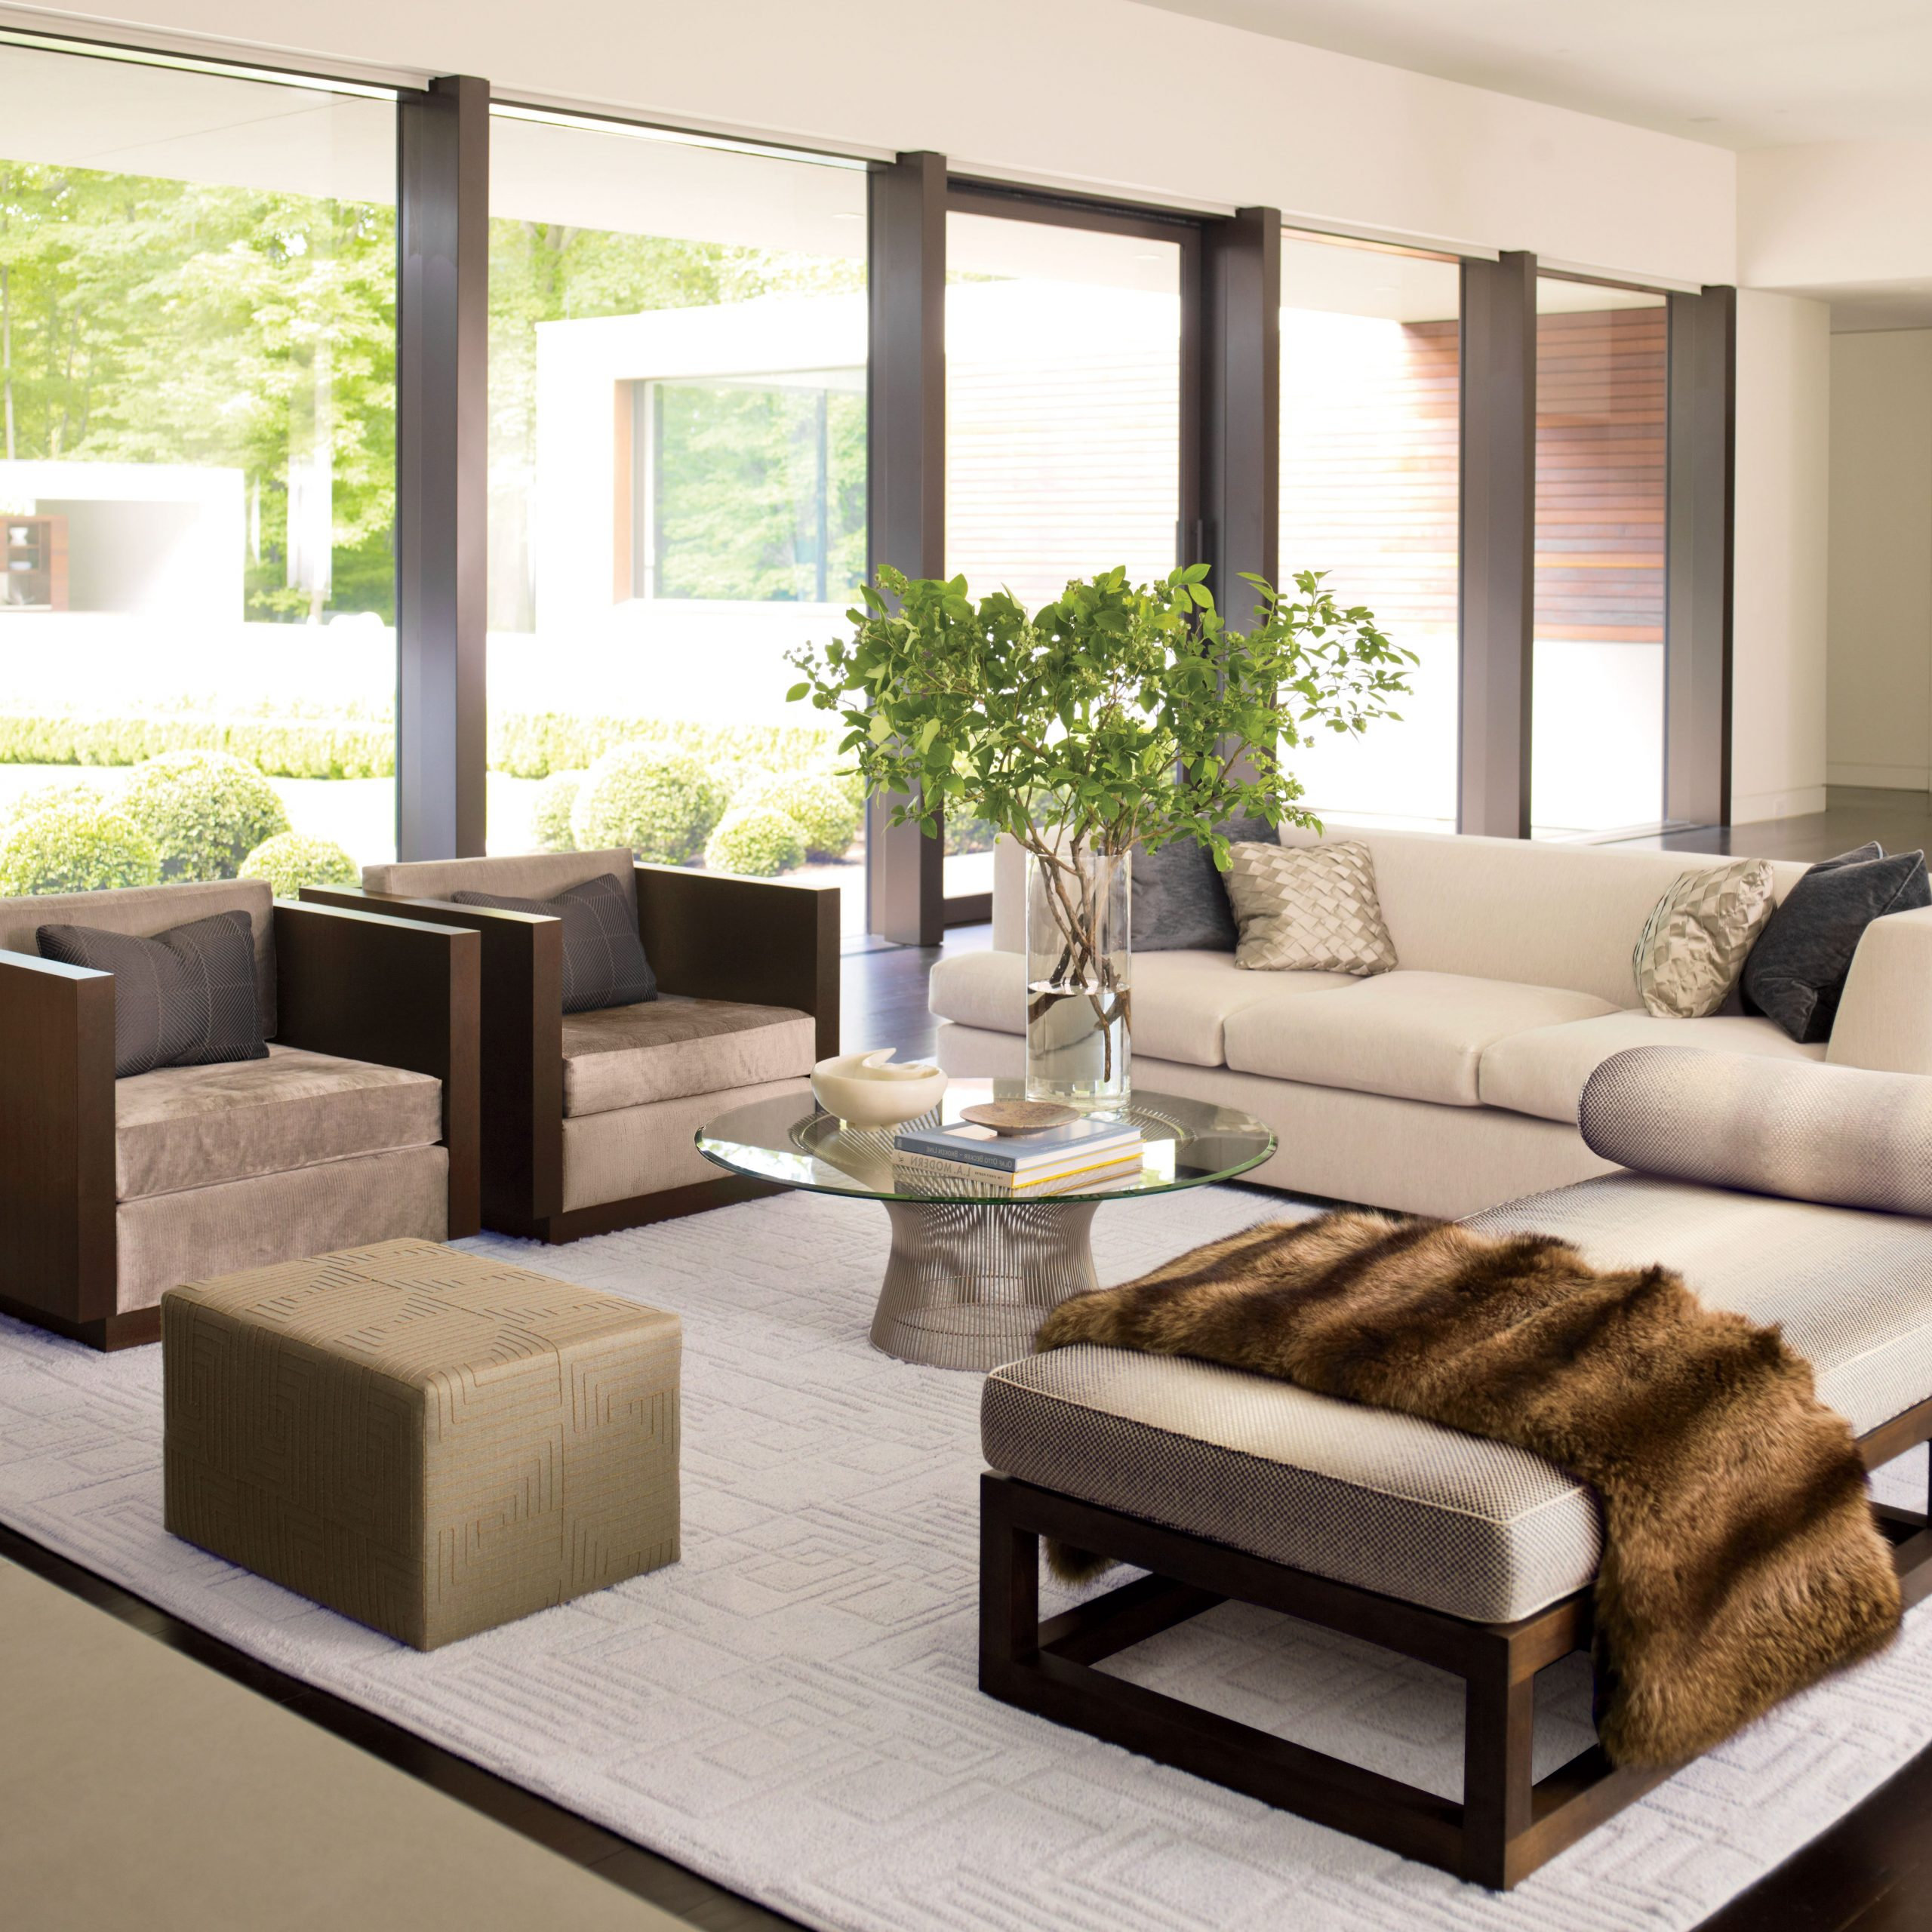 Starks Tufted Fabric Chesterfield Chair And Ottoman Sets Pertaining To Most Recent How To Incorporate Ottomans Into Your Living Room Decor (View 16 of 20)